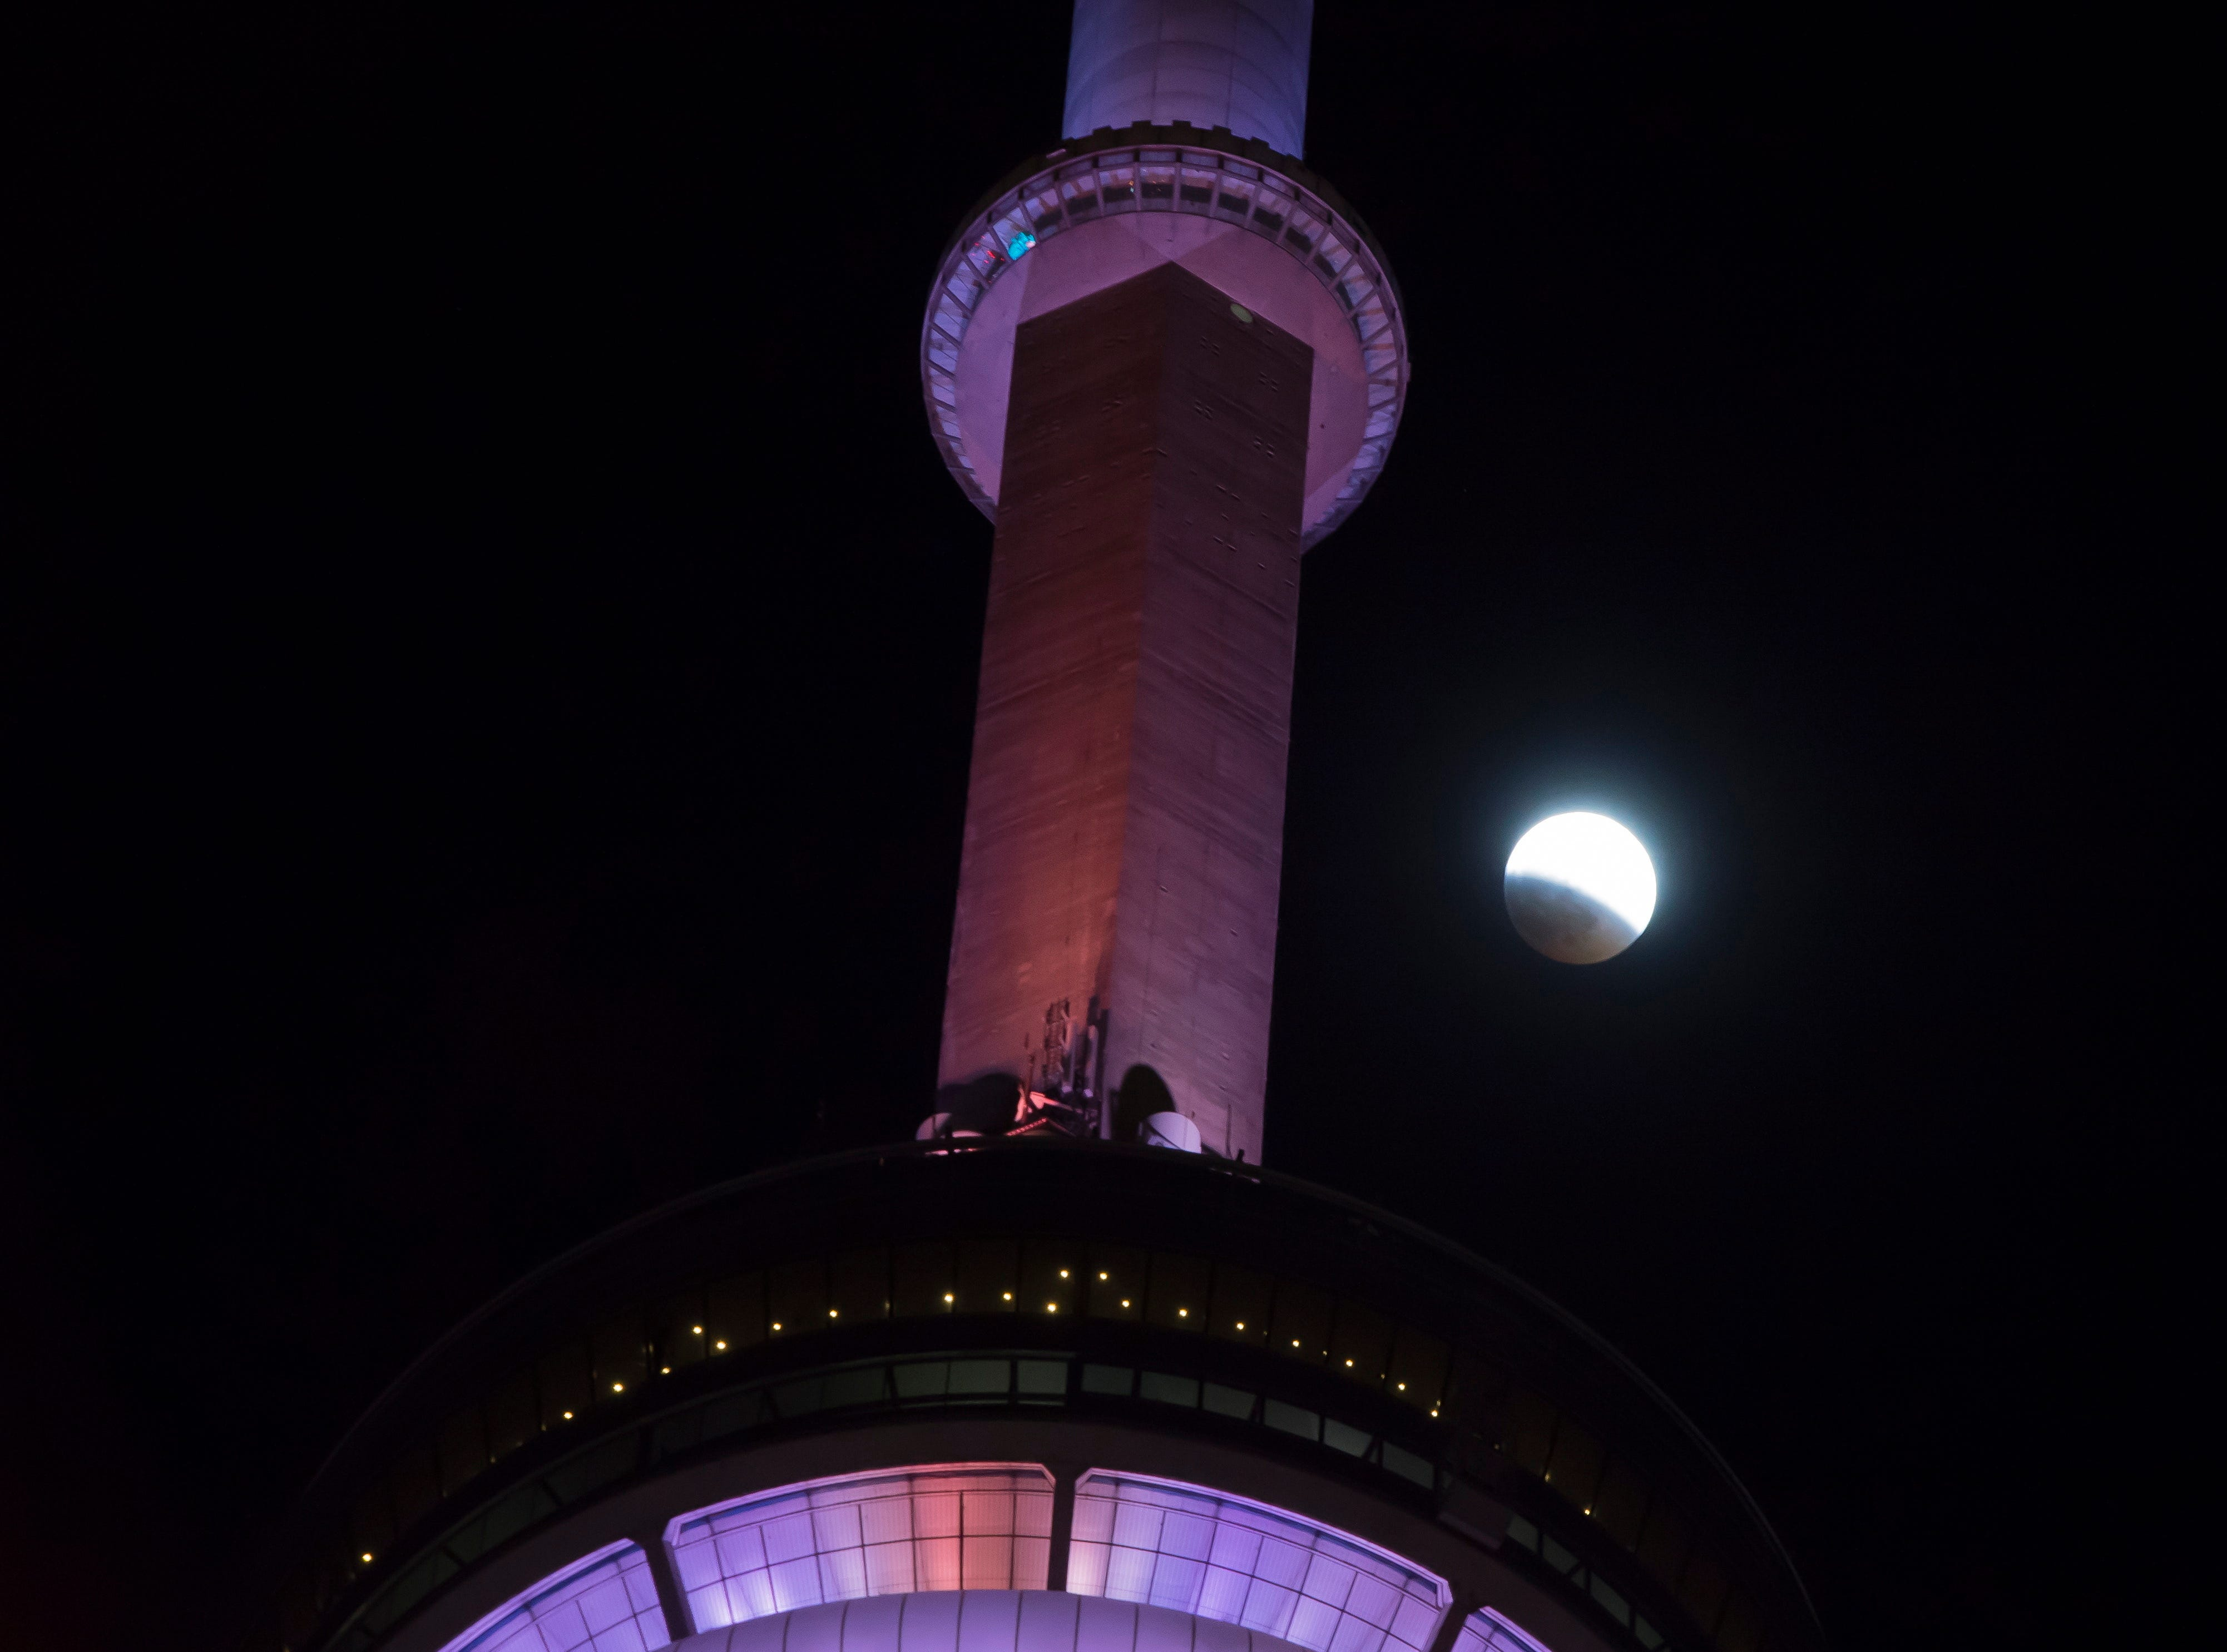 An eclipse of the moon progresses behind the CN Tower in Toronto on Sunday, Jan. 20, 2019. The entire eclipse will exceed three hours. Totality - when the moon's completely bathed in Earth's shadow - will last an hour. Expect the eclipsed, or blood moon, to turn red from sunlight scattering off Earth's atmosphere.